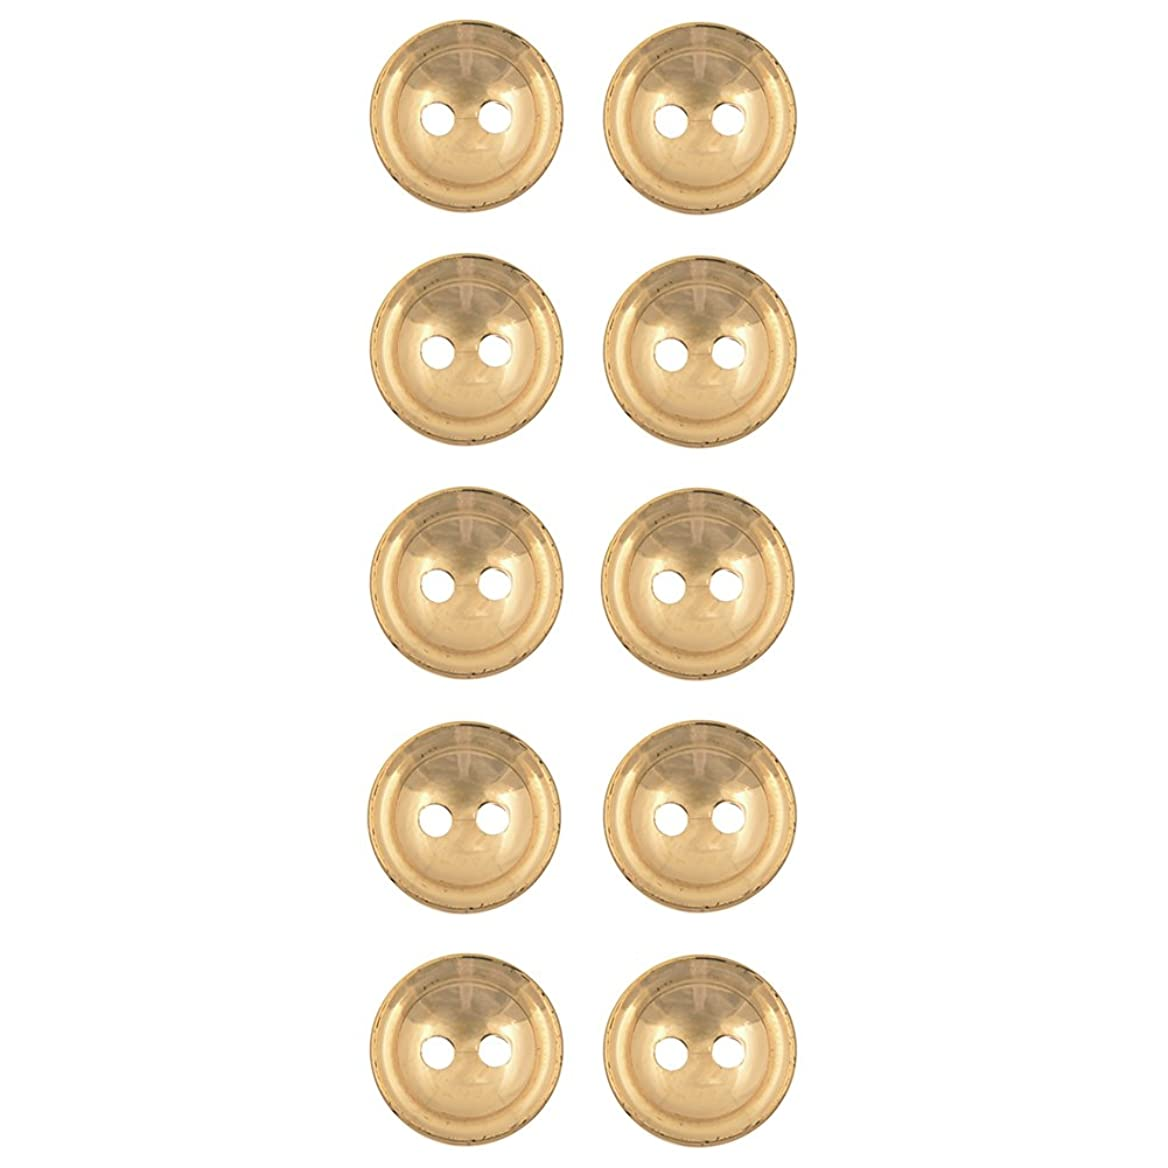 Concave With Double Rim 2 Hole ABS Metal Plated Button 20Line Gold cobkfymnbn53